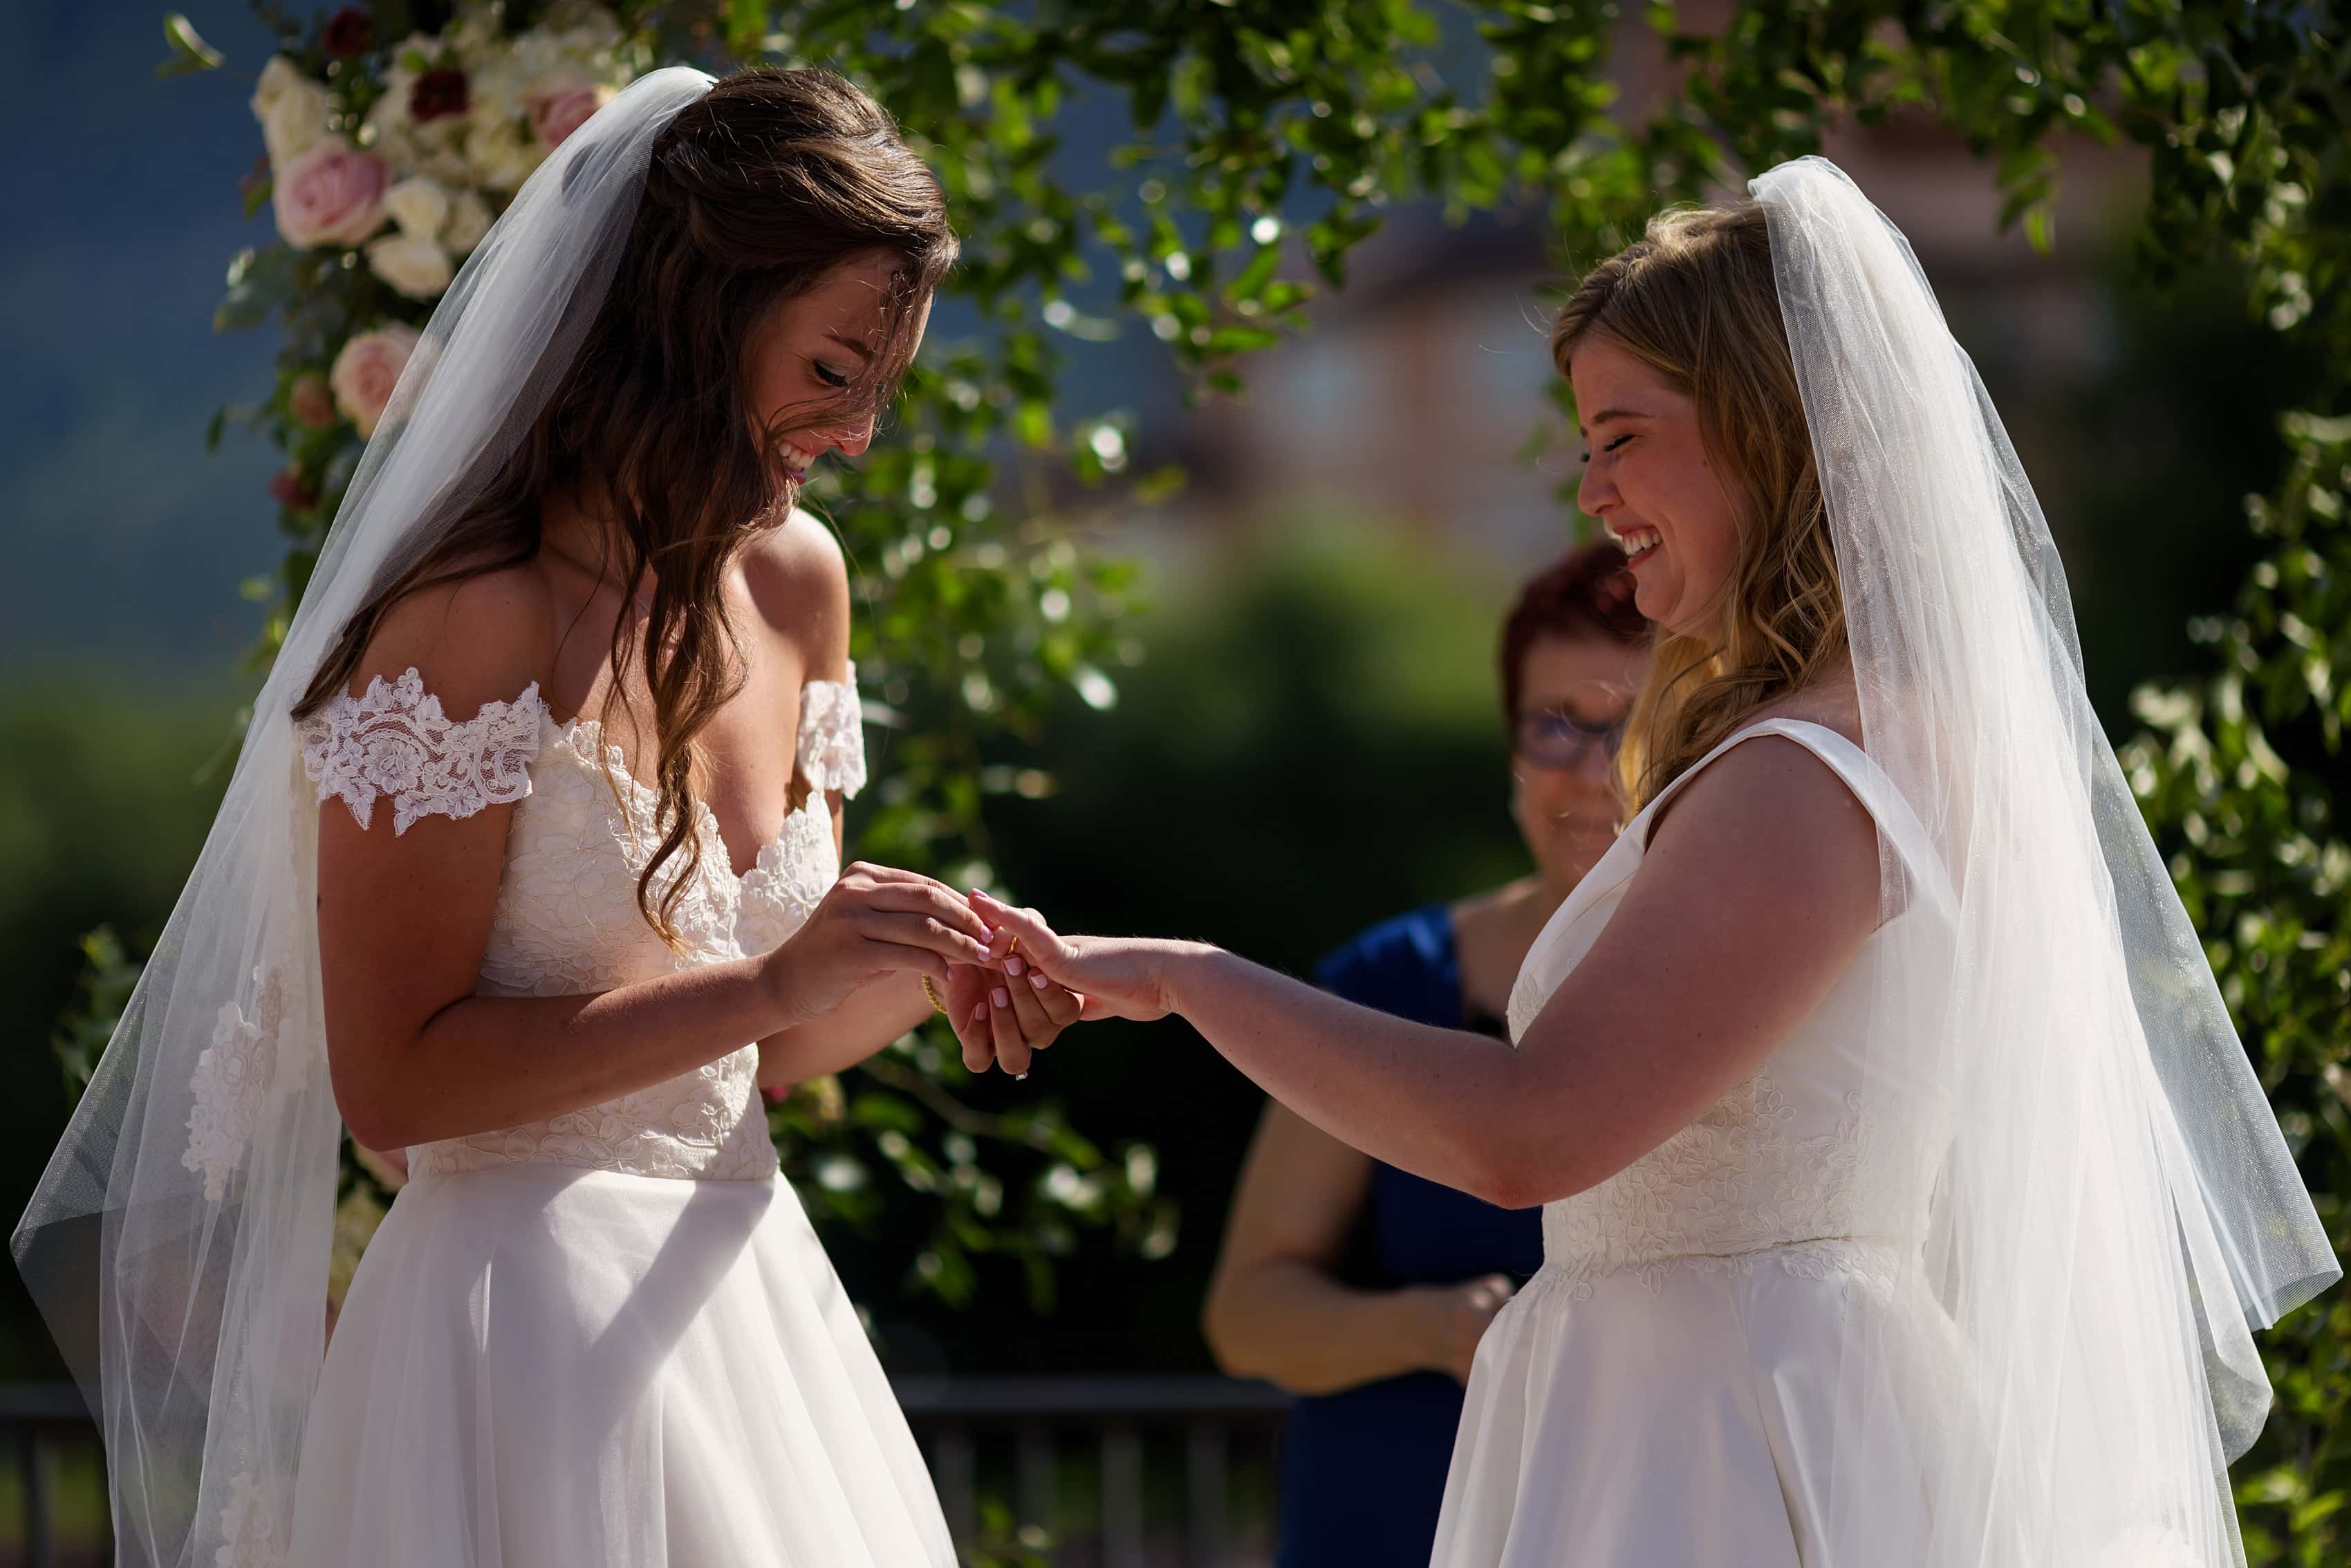 brides exchange rings during wedding ceremony with two brides at The Broadmoor in Colorado Springs, Colorado